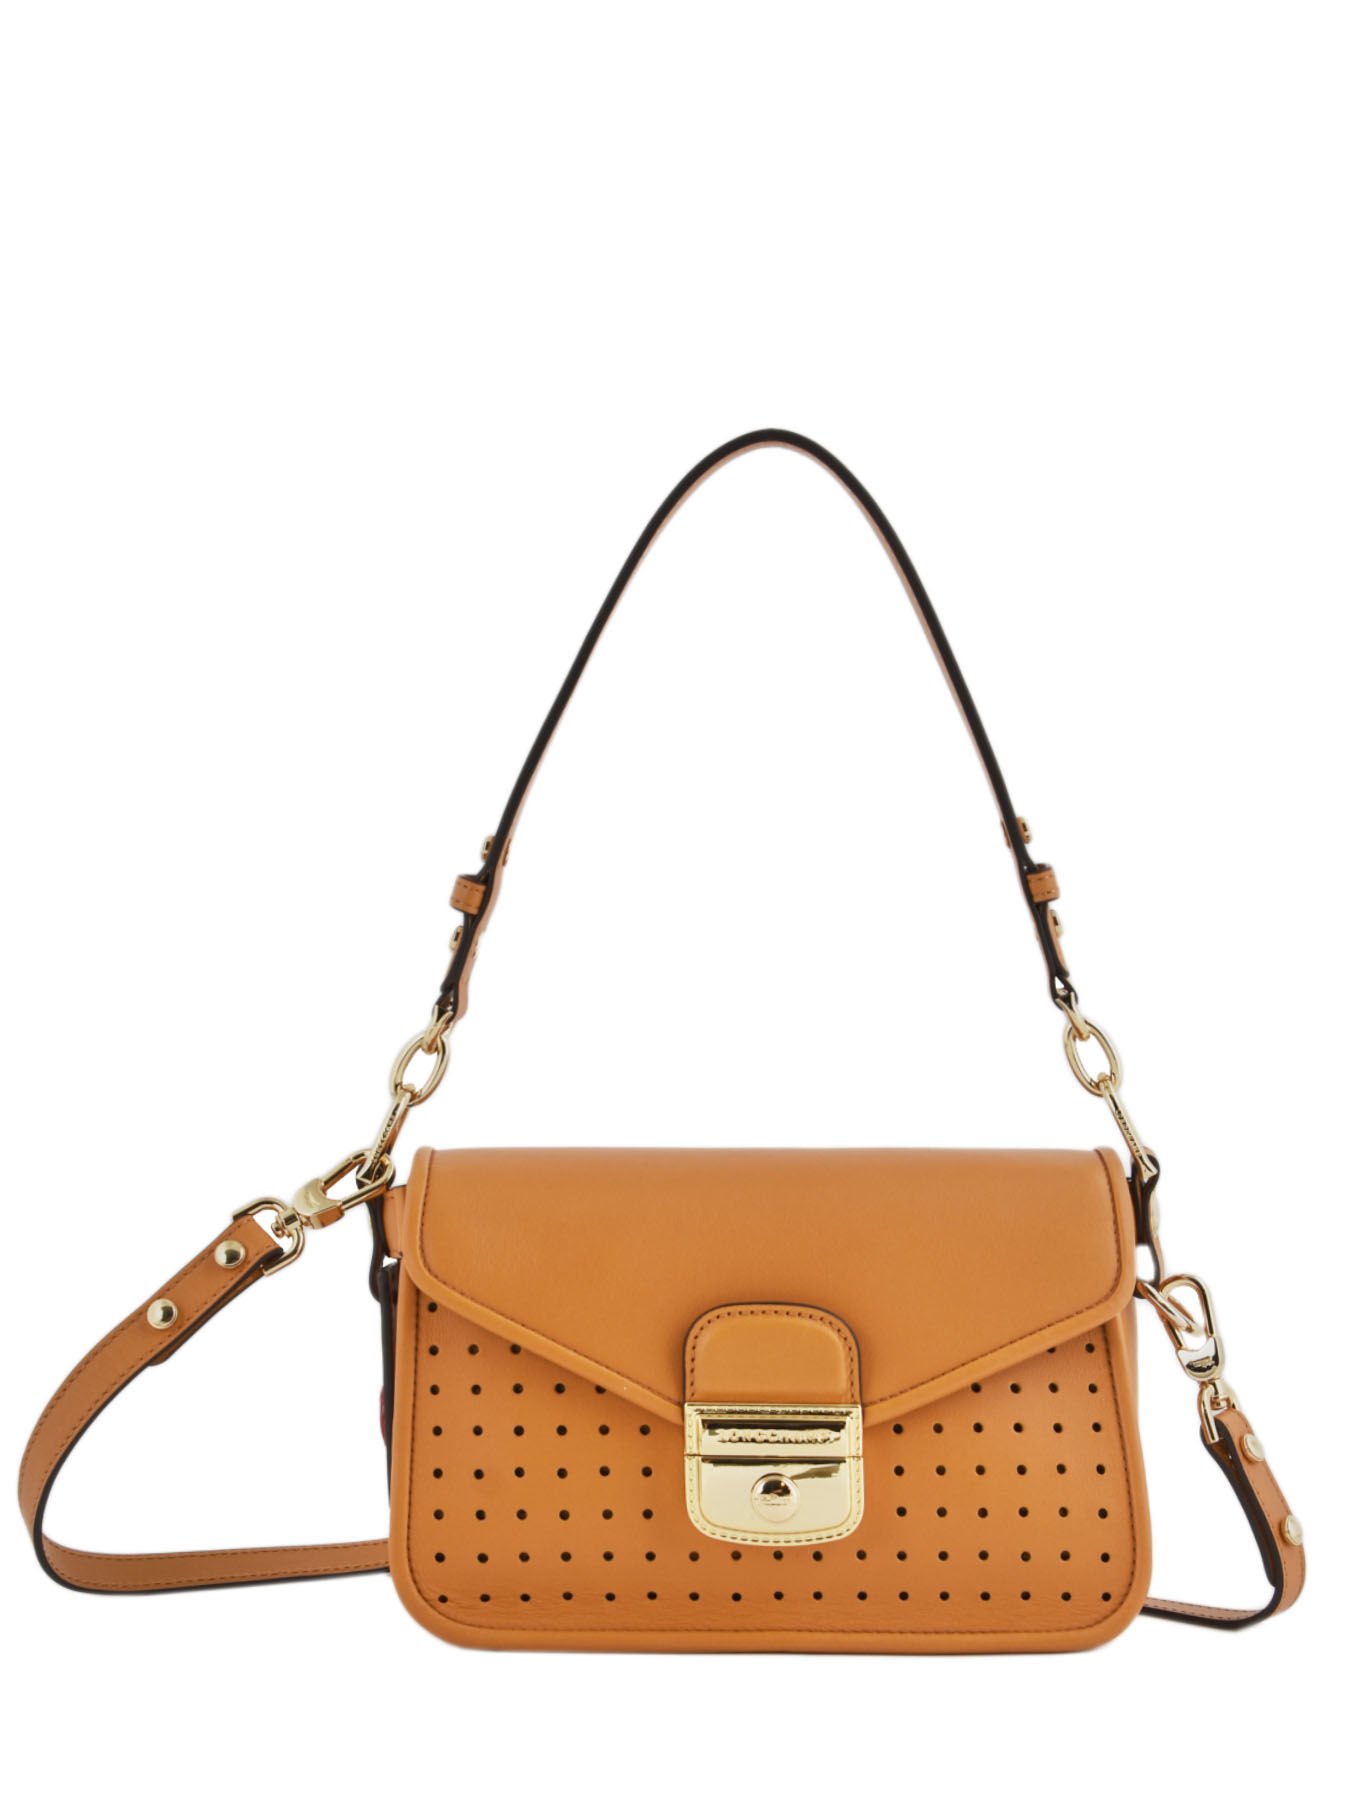 5315df6ea360 Longchamp Mademoiselle longchamp Messenger bag Brown · Longchamp  Mademoiselle longchamp Messenger bag Brown ...